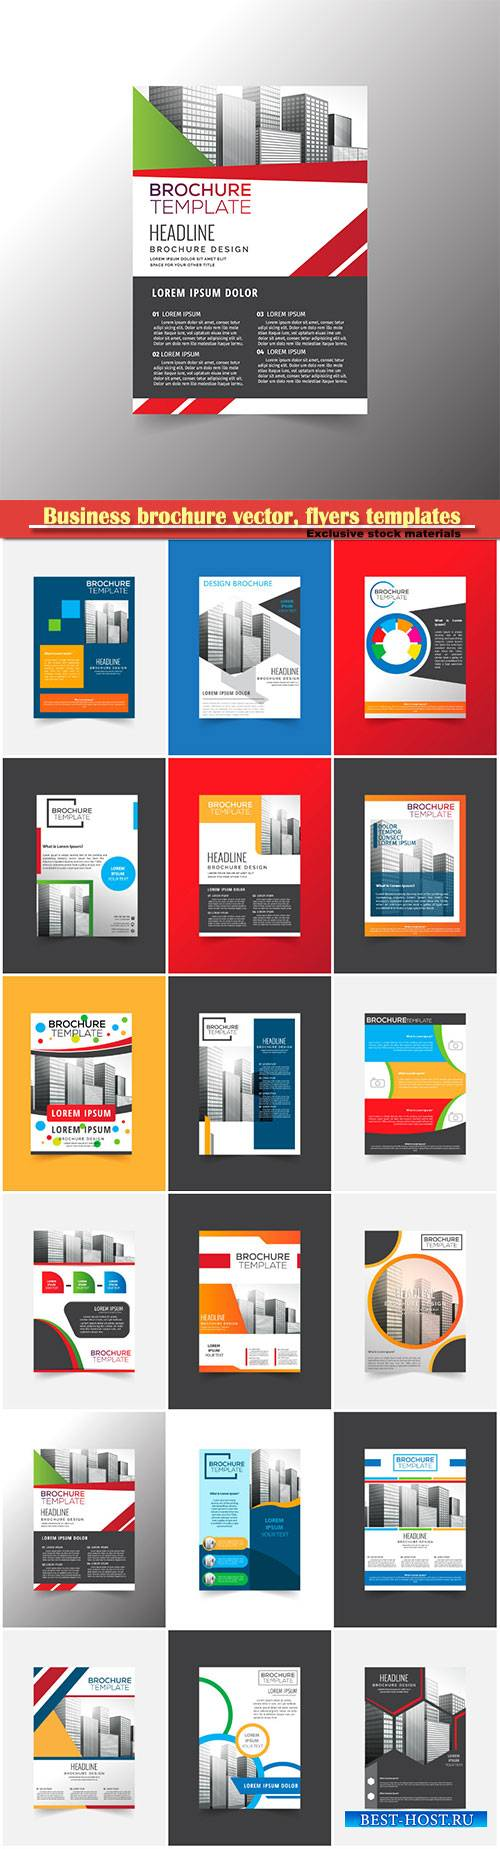 Business brochure vector, flyers templates, report cover design # 97